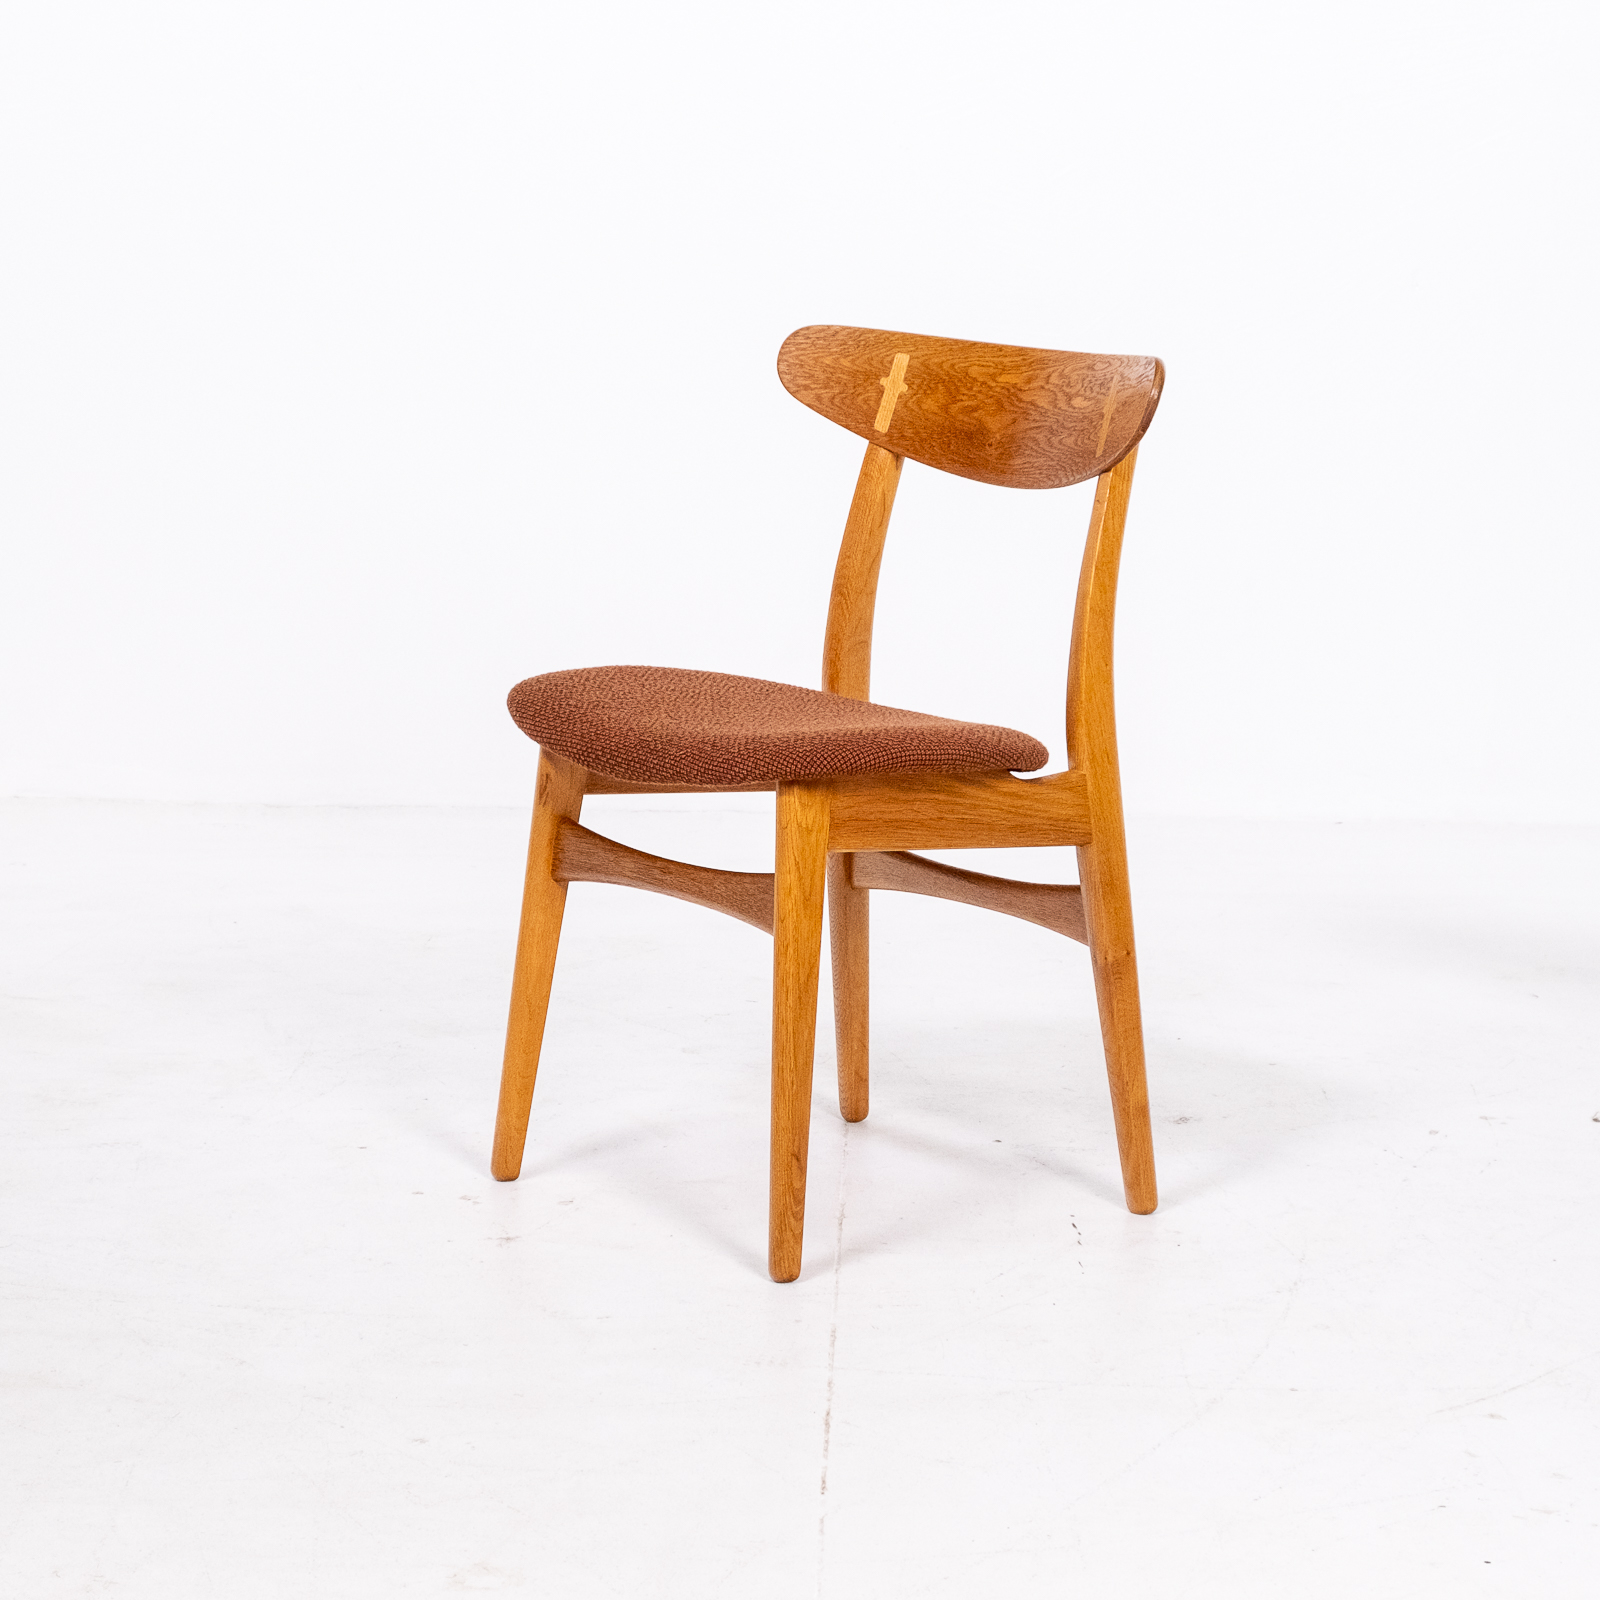 Set Of 4 Ch 30 Dining Chairs By Hans Wegner For Carl Hansen And Son In Oak And Kvadart Upholstery, 1950s, Denmark 07